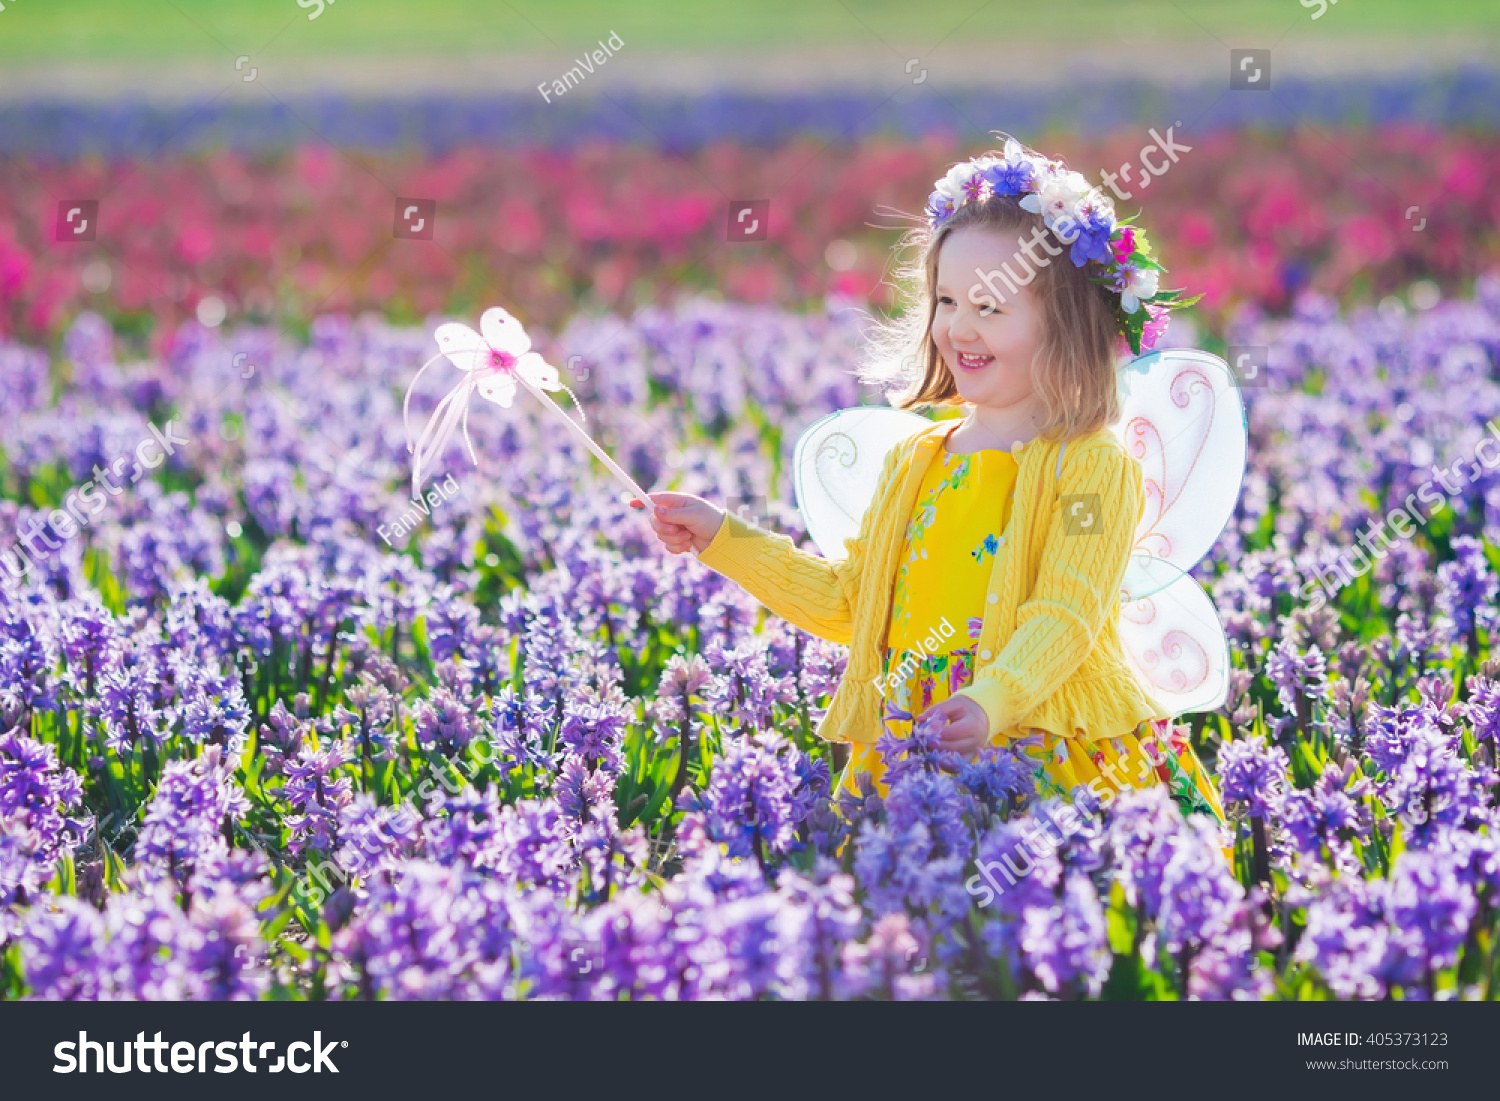 Royalty Free Beautiful Girl Playing In Blooming 405373123 Stock